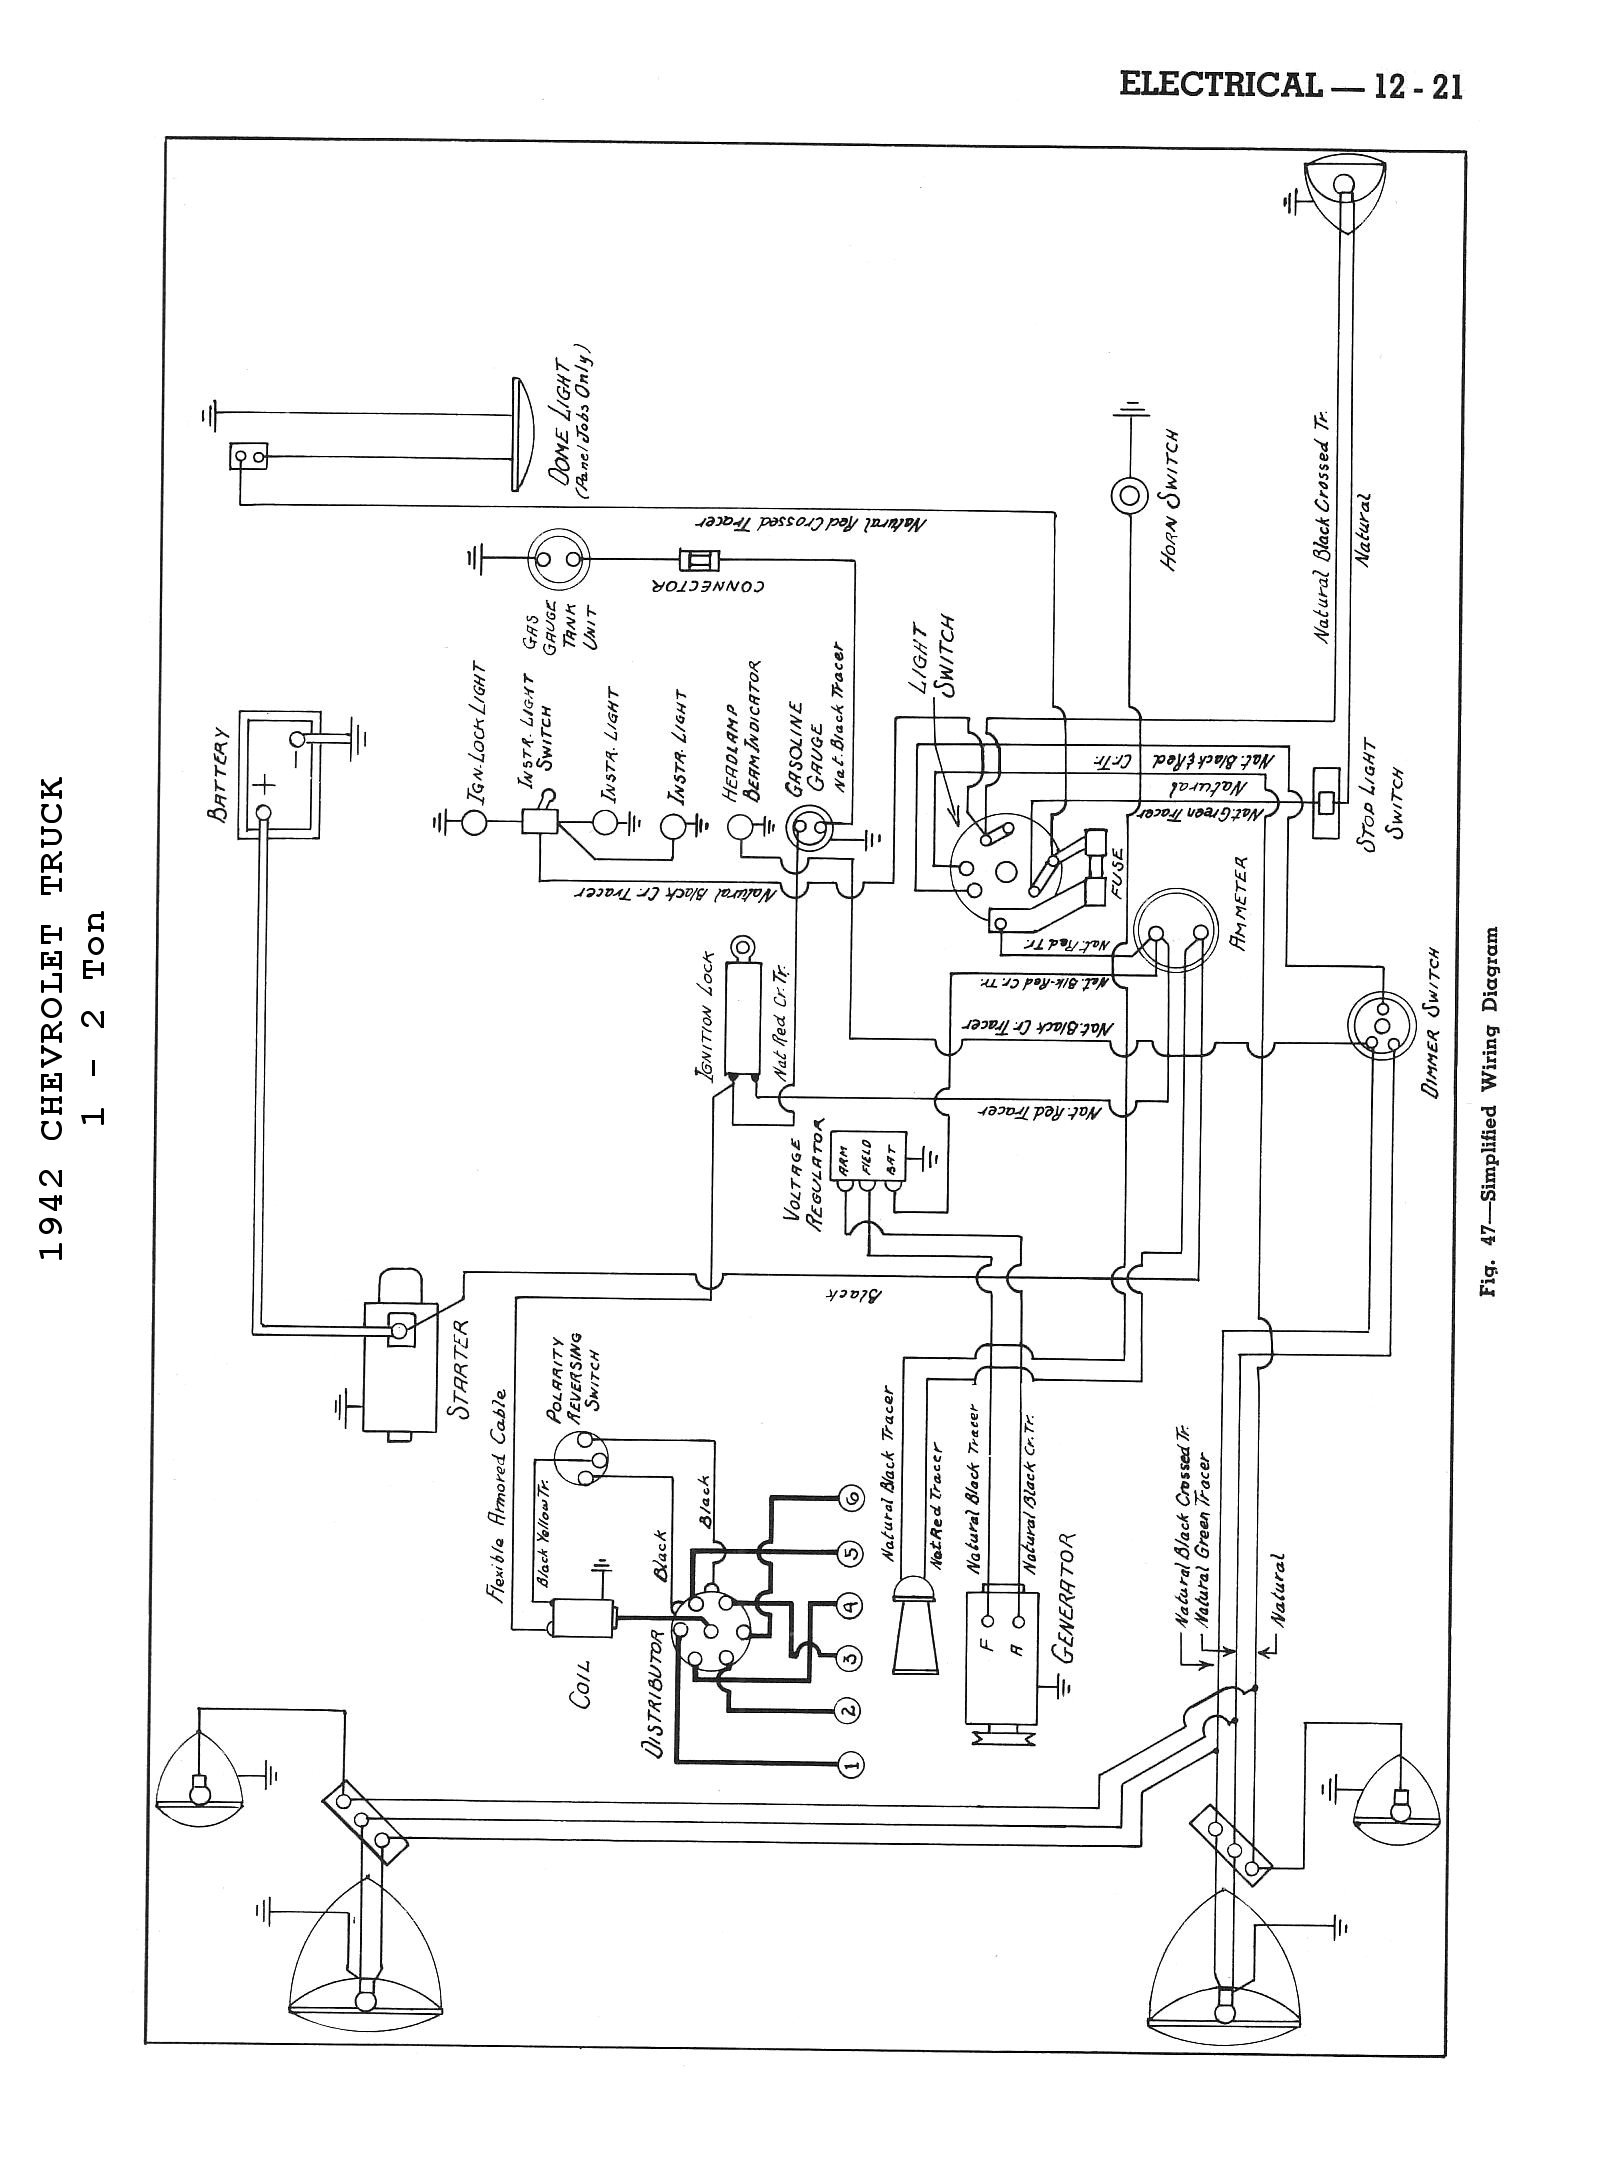 42cm4x2t1221 cm wiring diagram cm hoist wiring diagram \u2022 wiring diagrams j boston subsat 6 wiring diagram at cita.asia